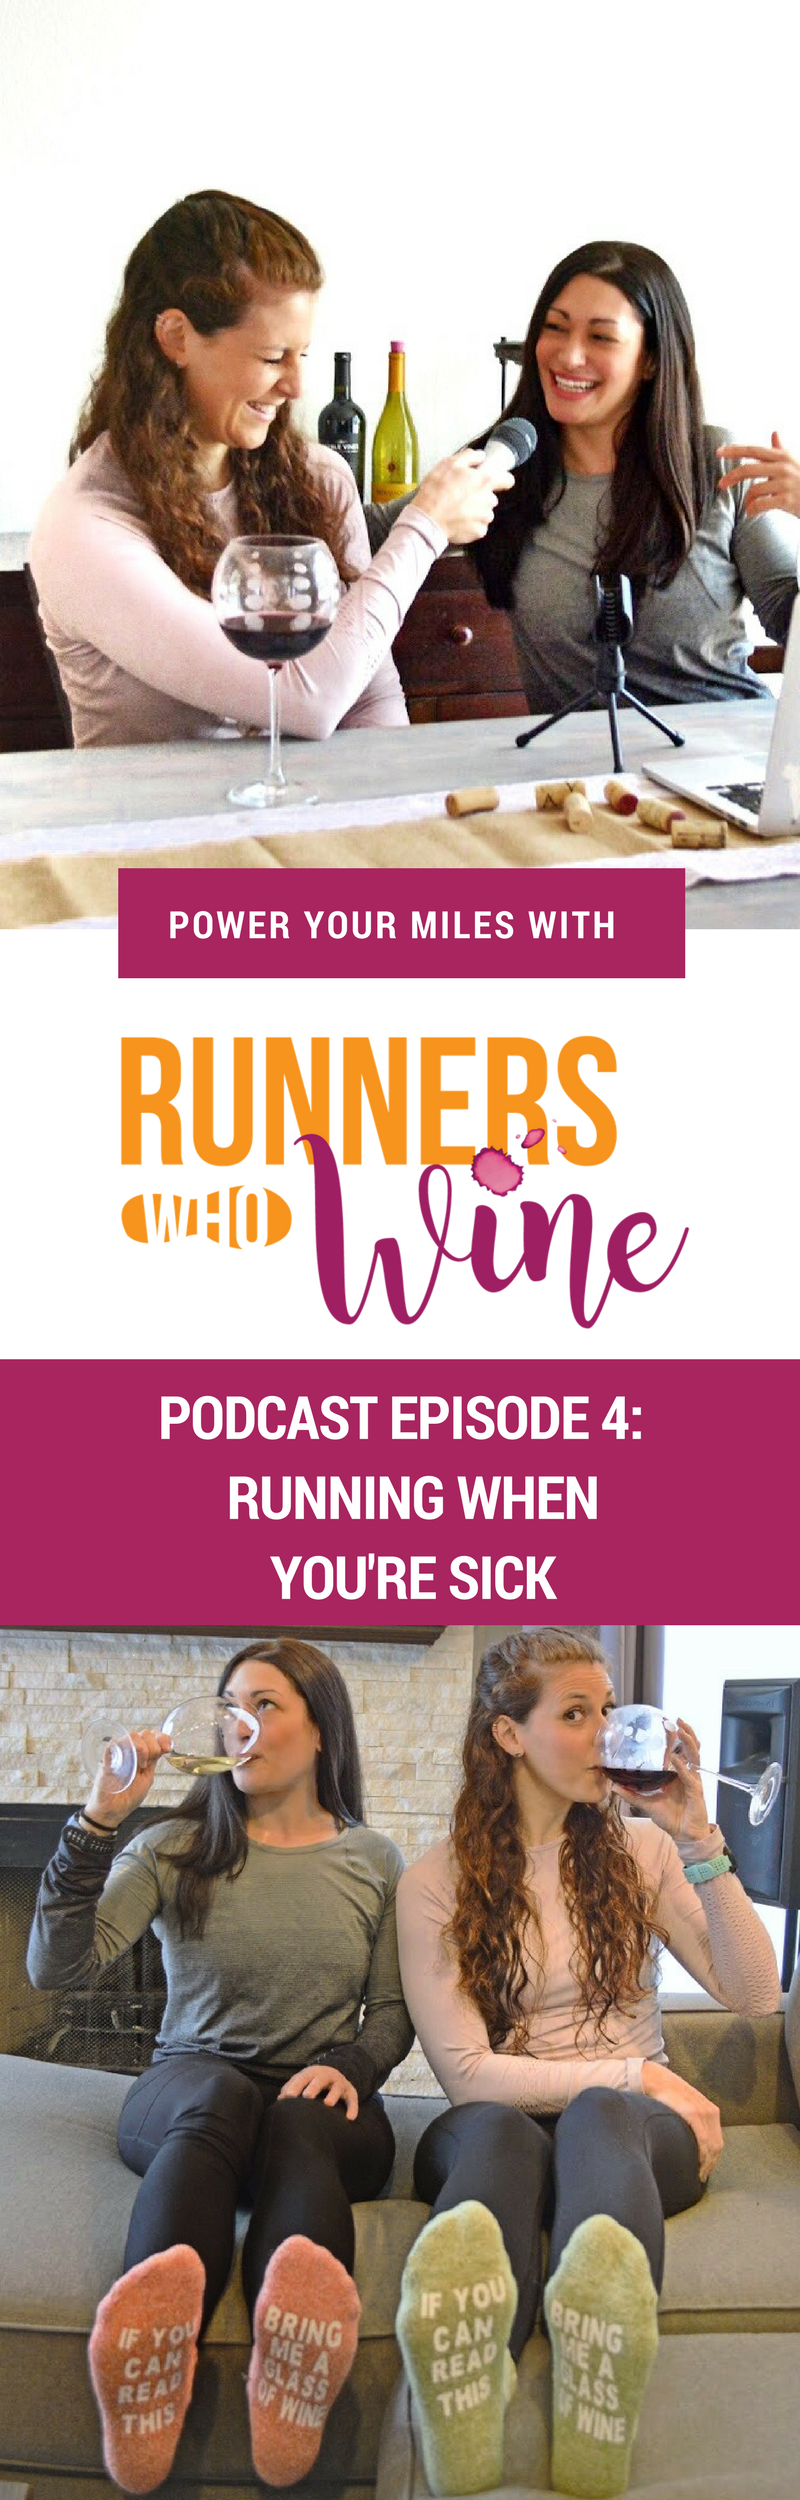 Runners Who Wine Episode 4: Tips for Running When You're Sick